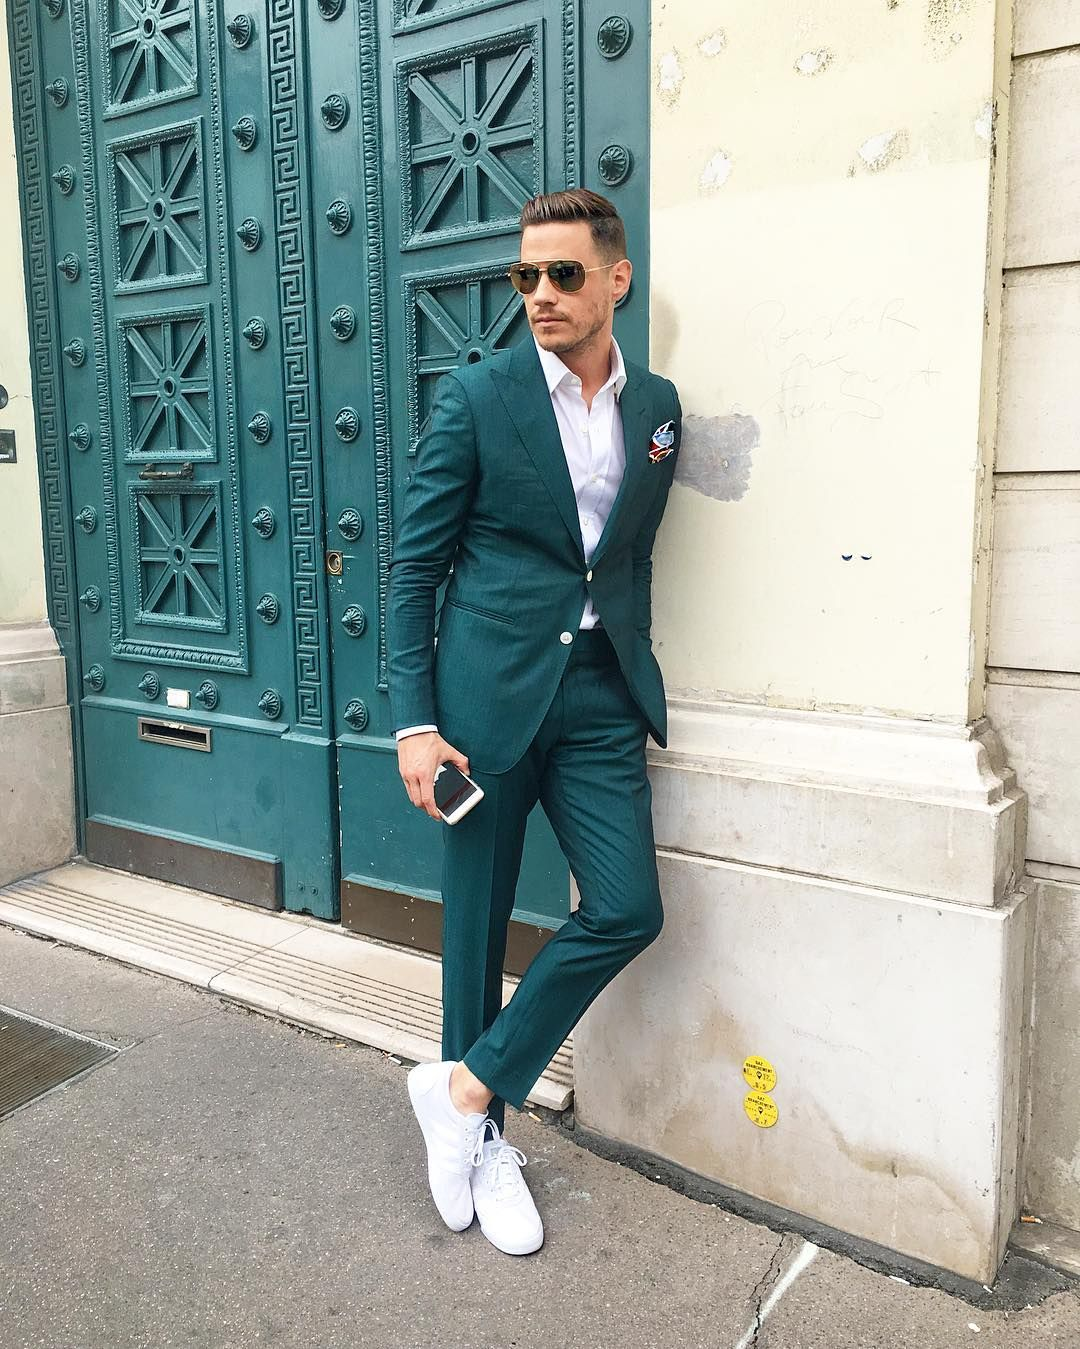 "Aleks Musika on Instagram ""•Streets of Paris• musikafrere paris 🇫🇷"" is part of Suits and sneakers - 4,942 Likes, 92 Comments  Aleks Musika (@aleksmusika) on Instagram ""•Streets of Paris• musikafrere paris 🇫🇷"""